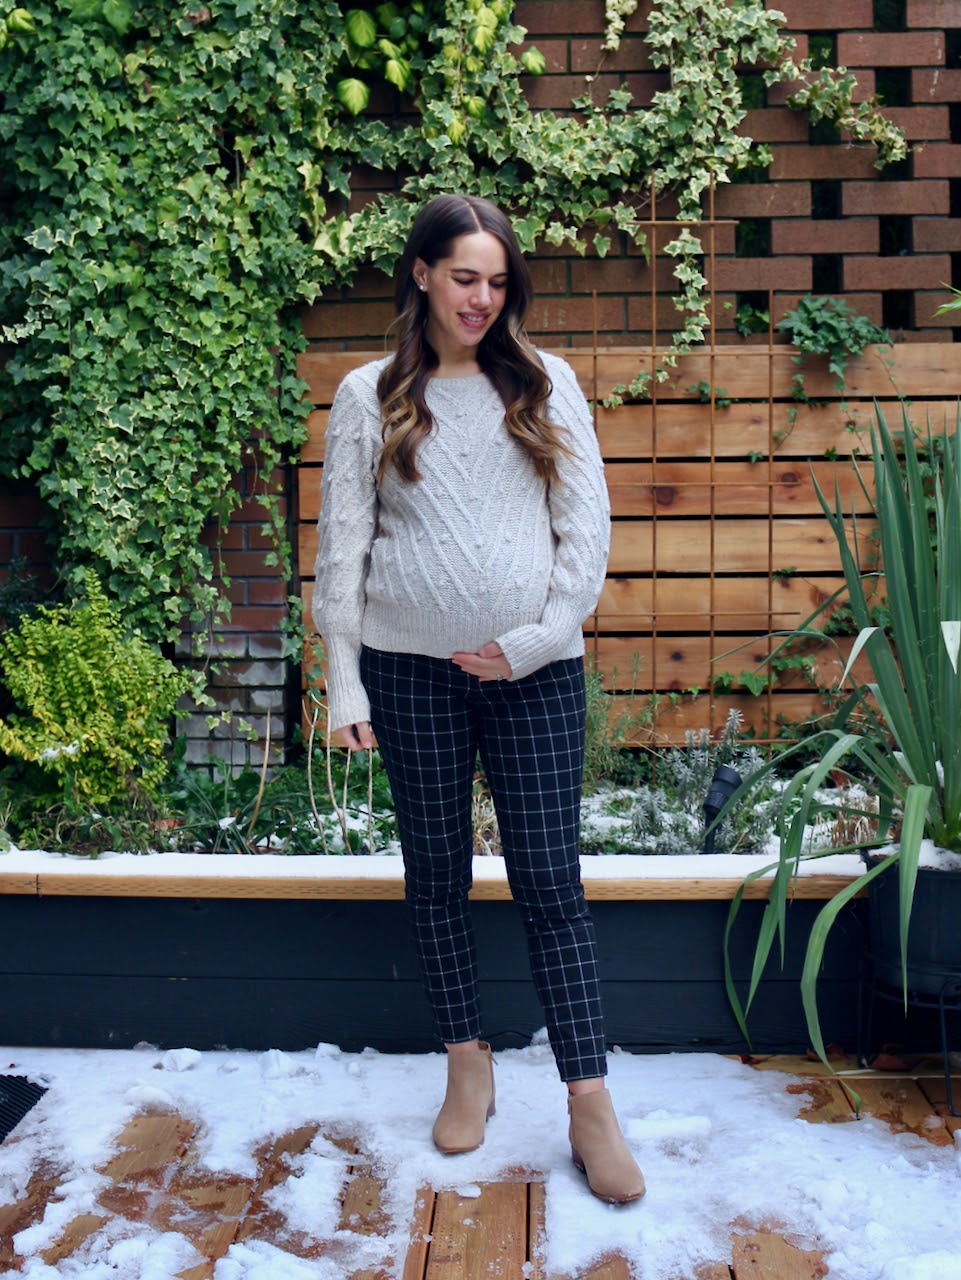 Jules in Flats - Windowpane Pixie Pants with Bobble Stitch Sweater (Business Casual Workwear on a Budget)